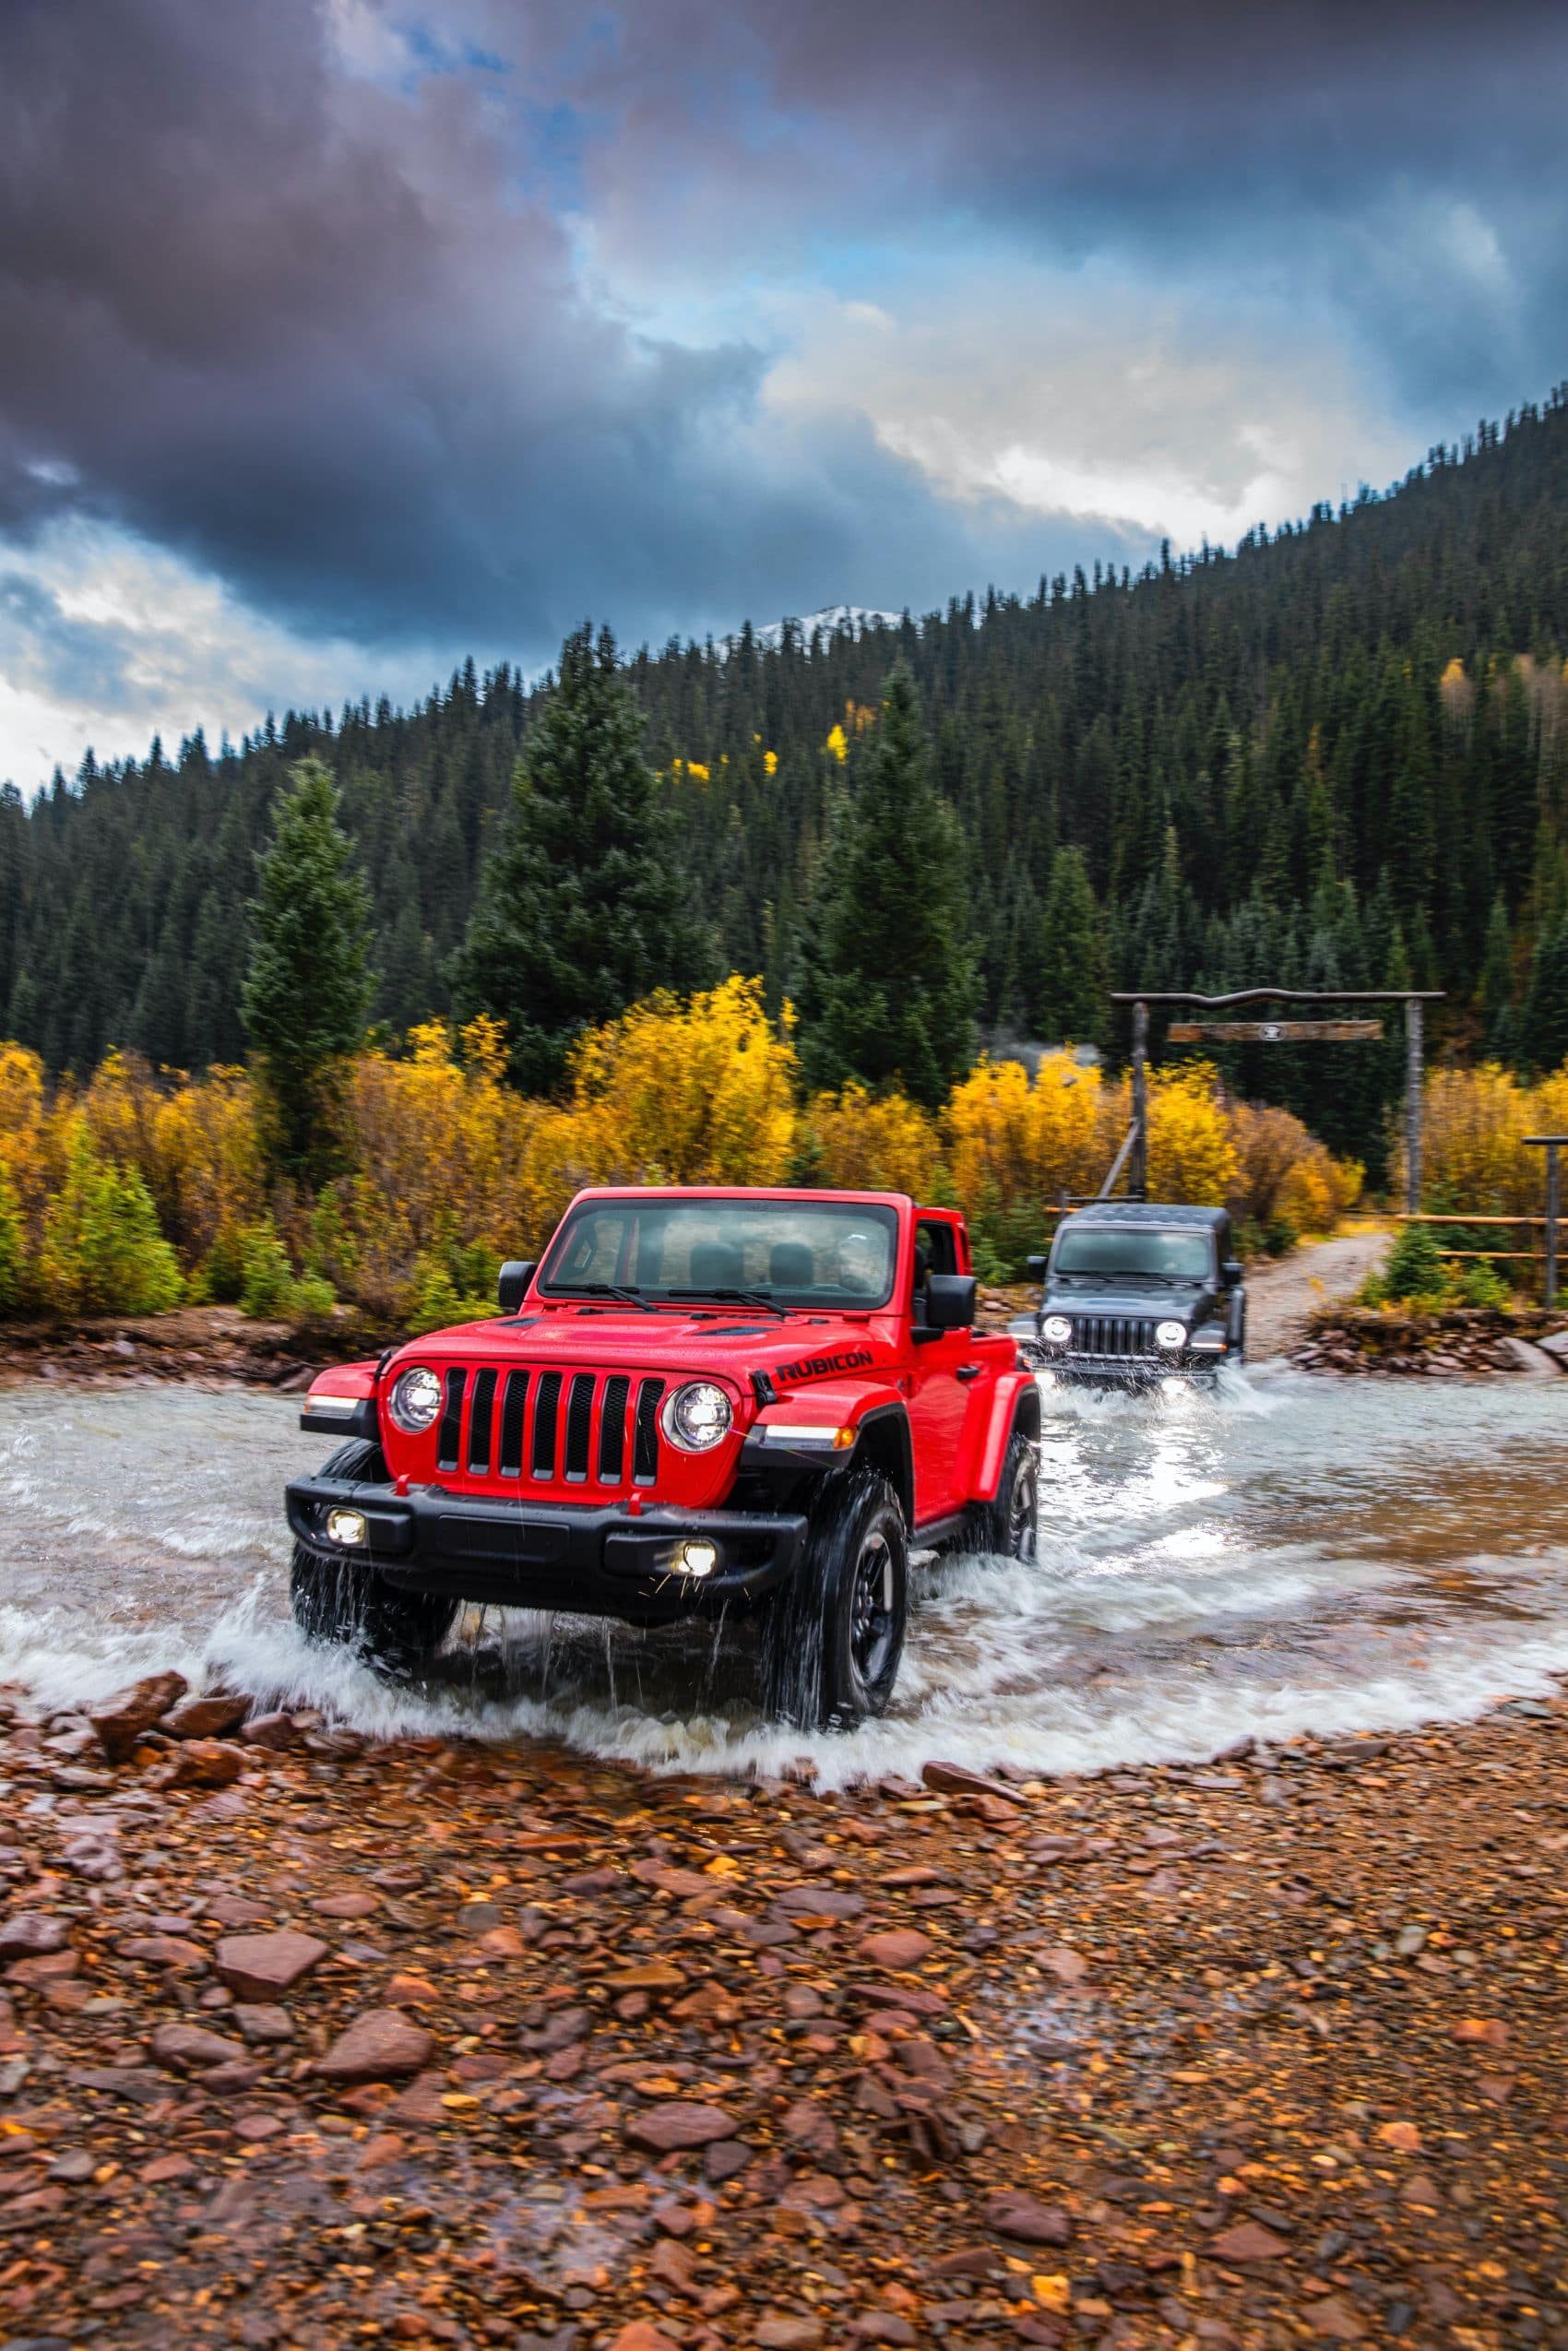 2021 Jeep Wrangler JL Unlimited and JL Rubicon